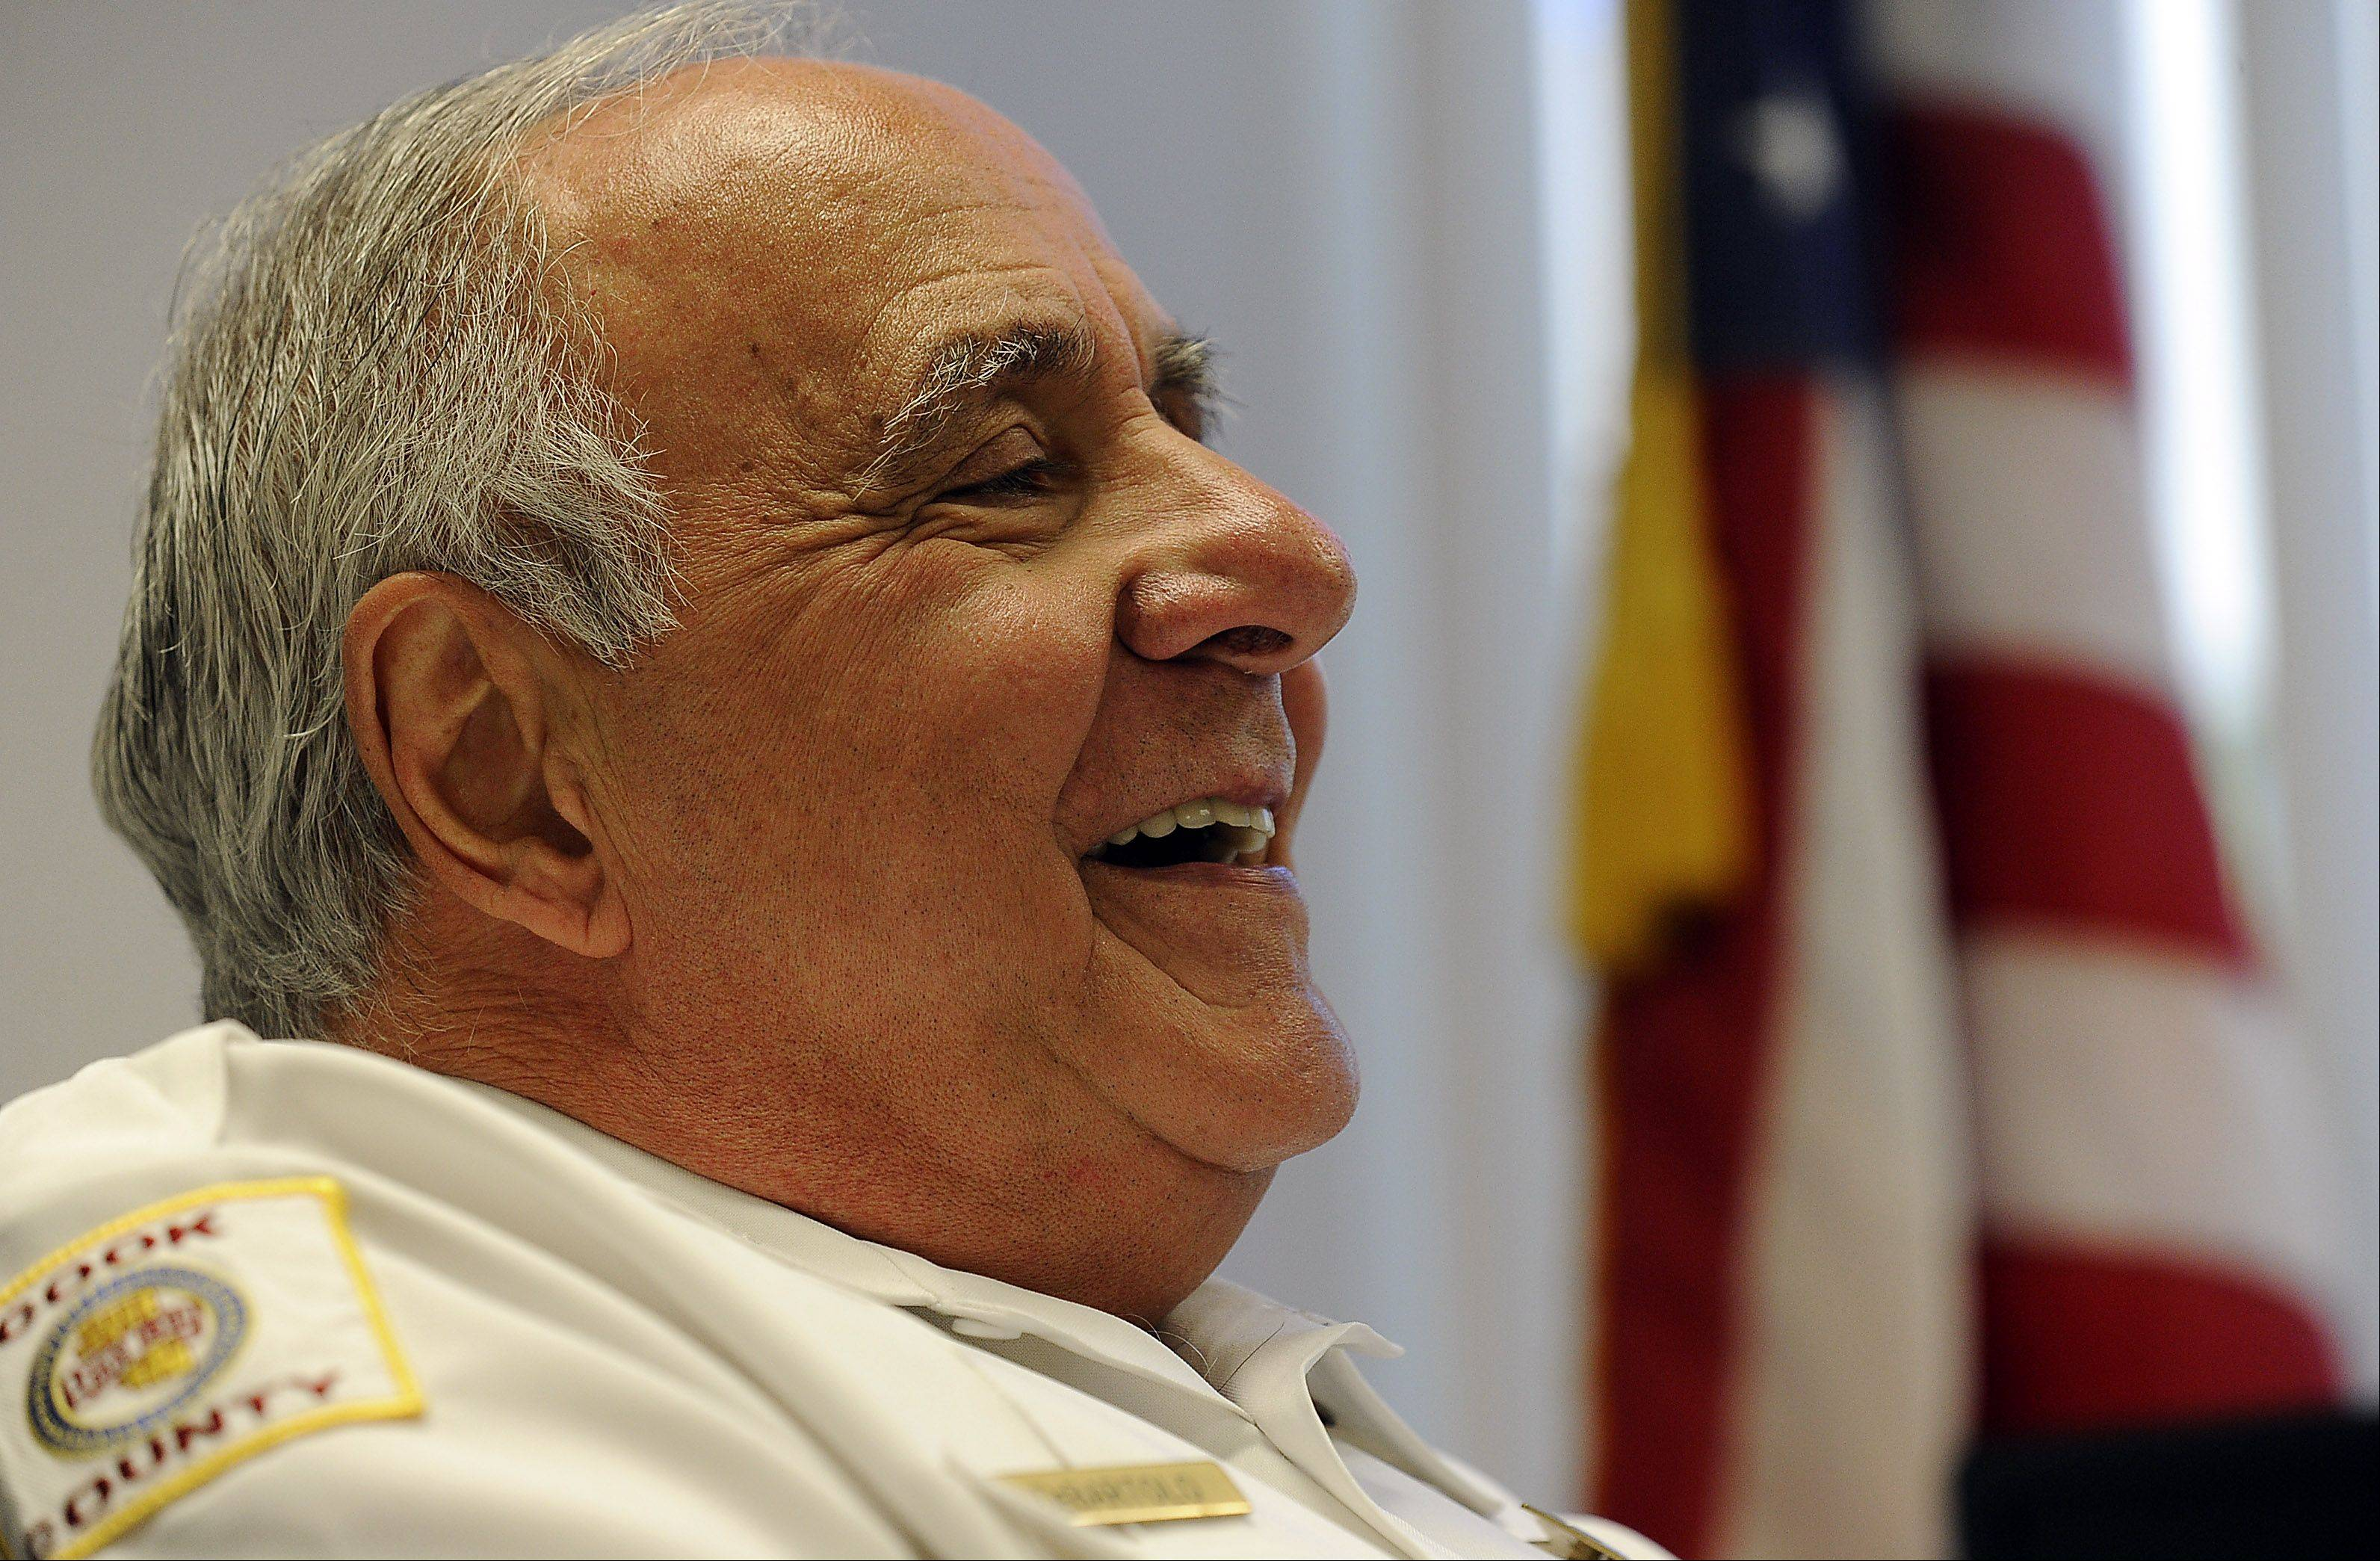 After 55 years, beloved courthouse chief still no plans to retire